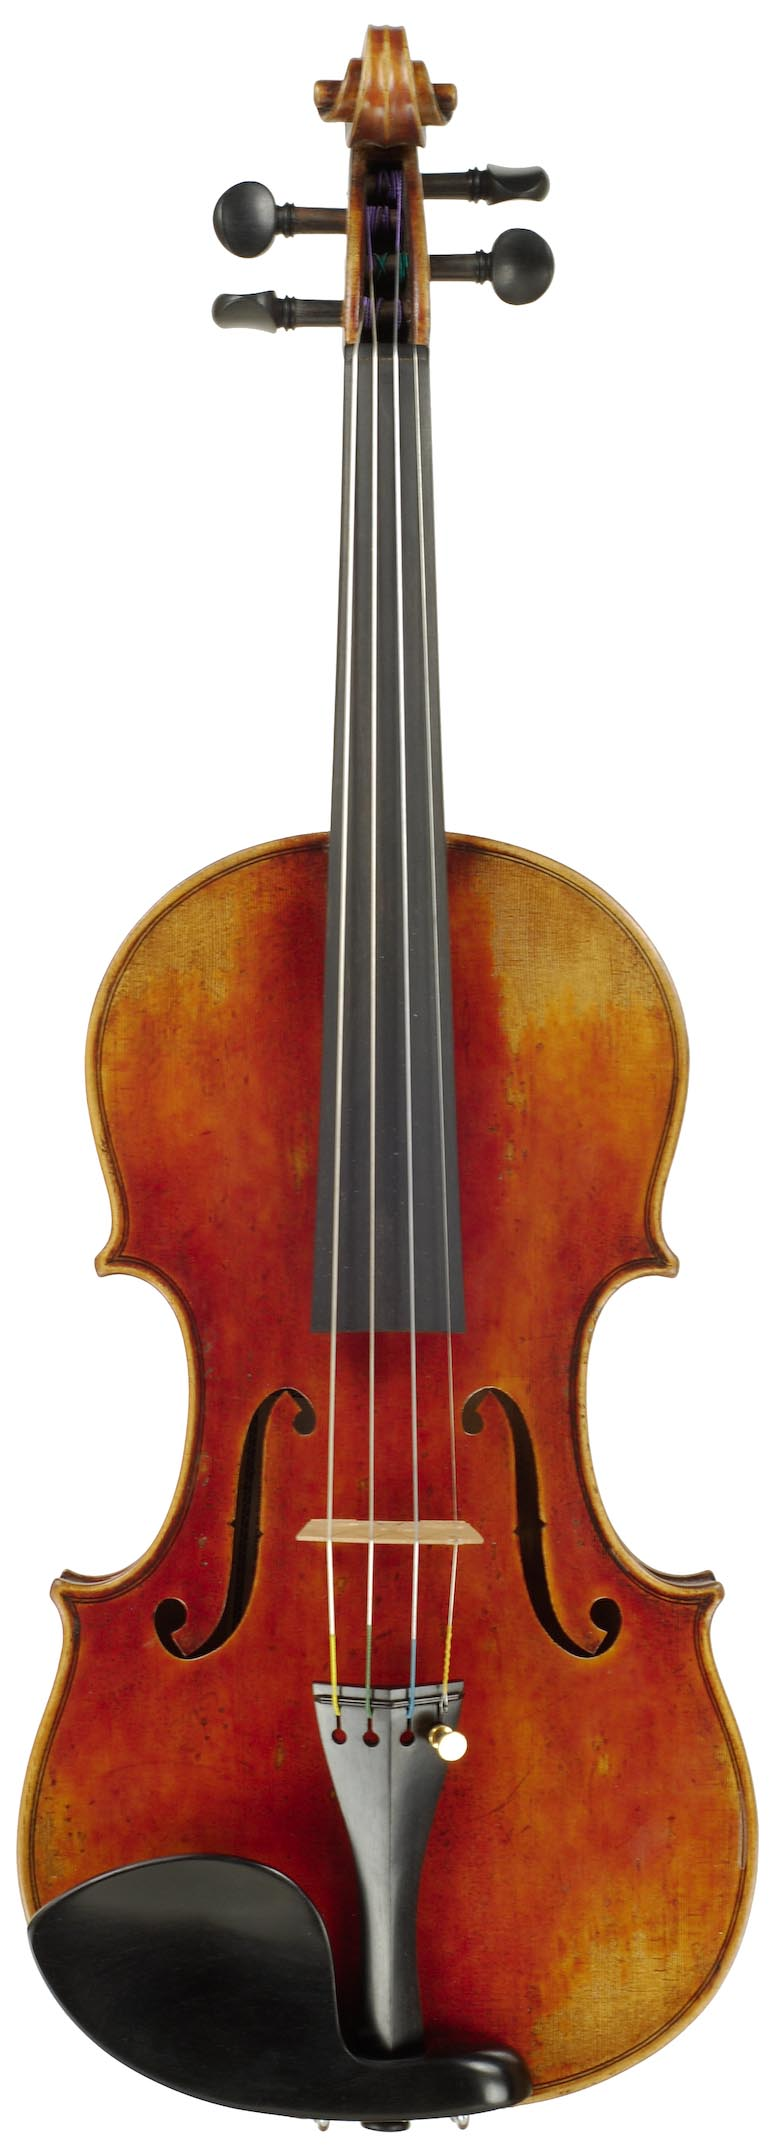 Jay_Haide_violin_top